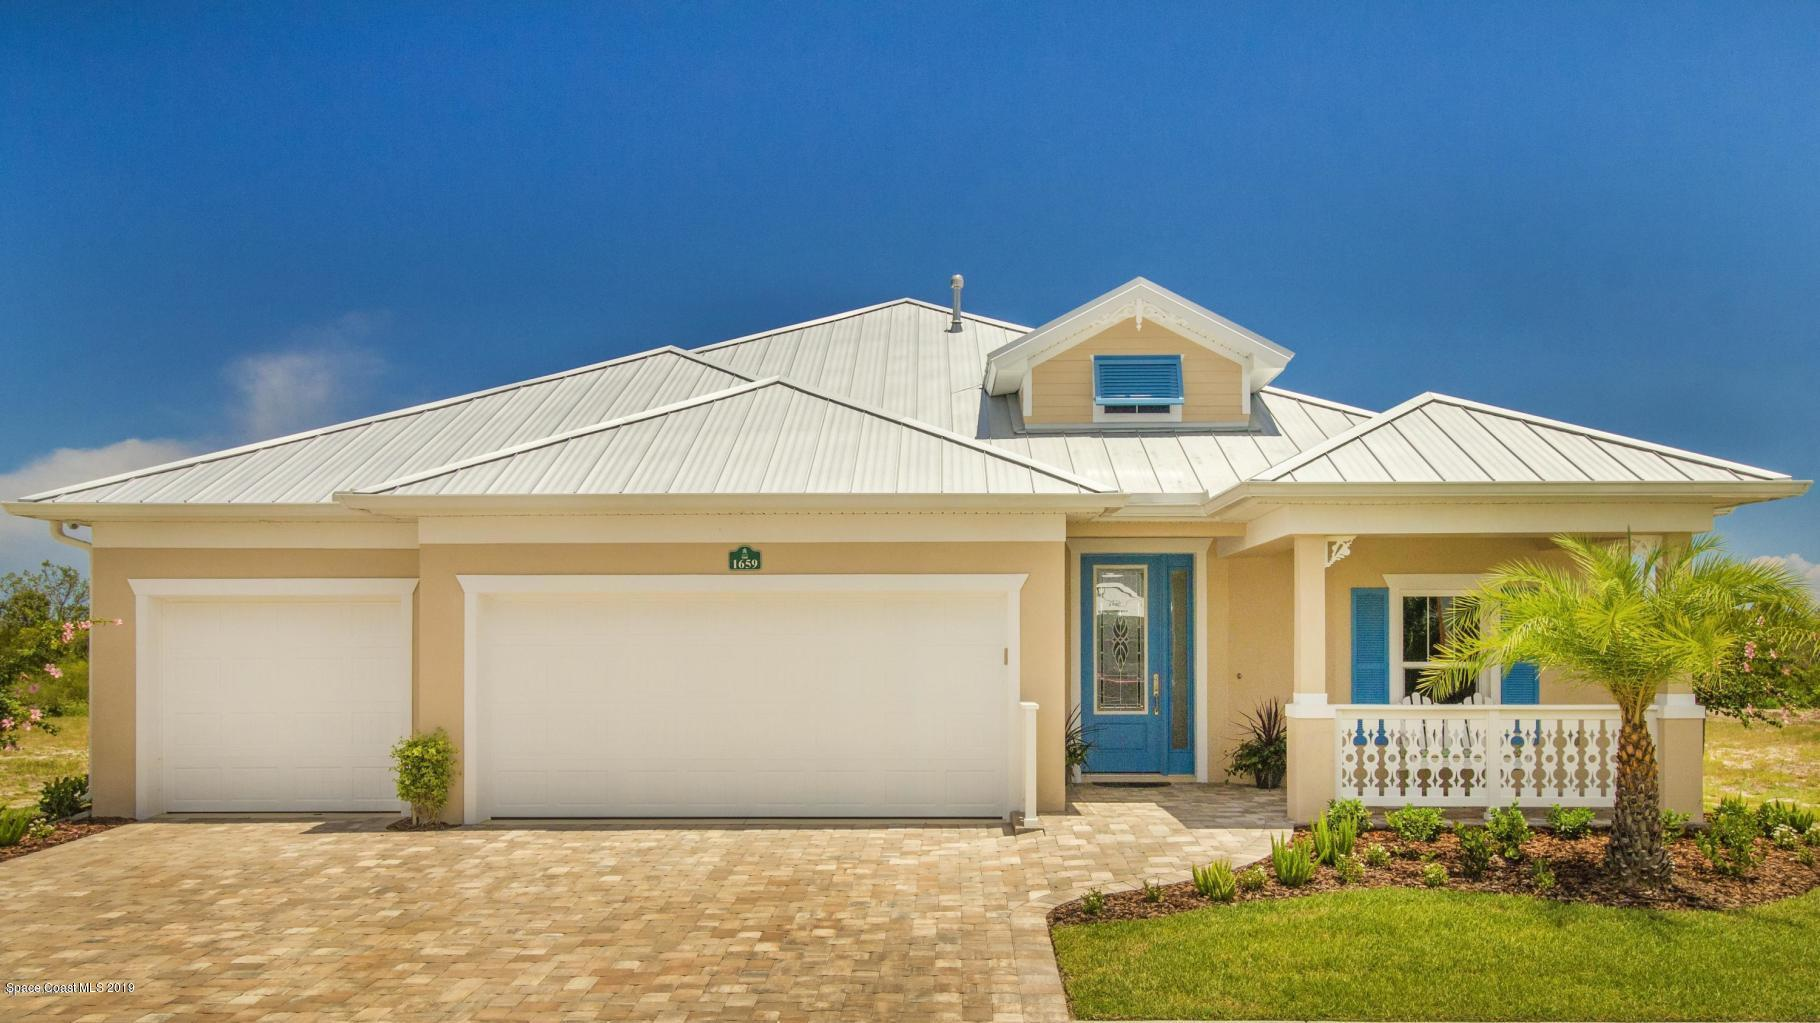 Single Family Homes for Sale at 1659 Tullagee Melbourne, Florida 32940 United States